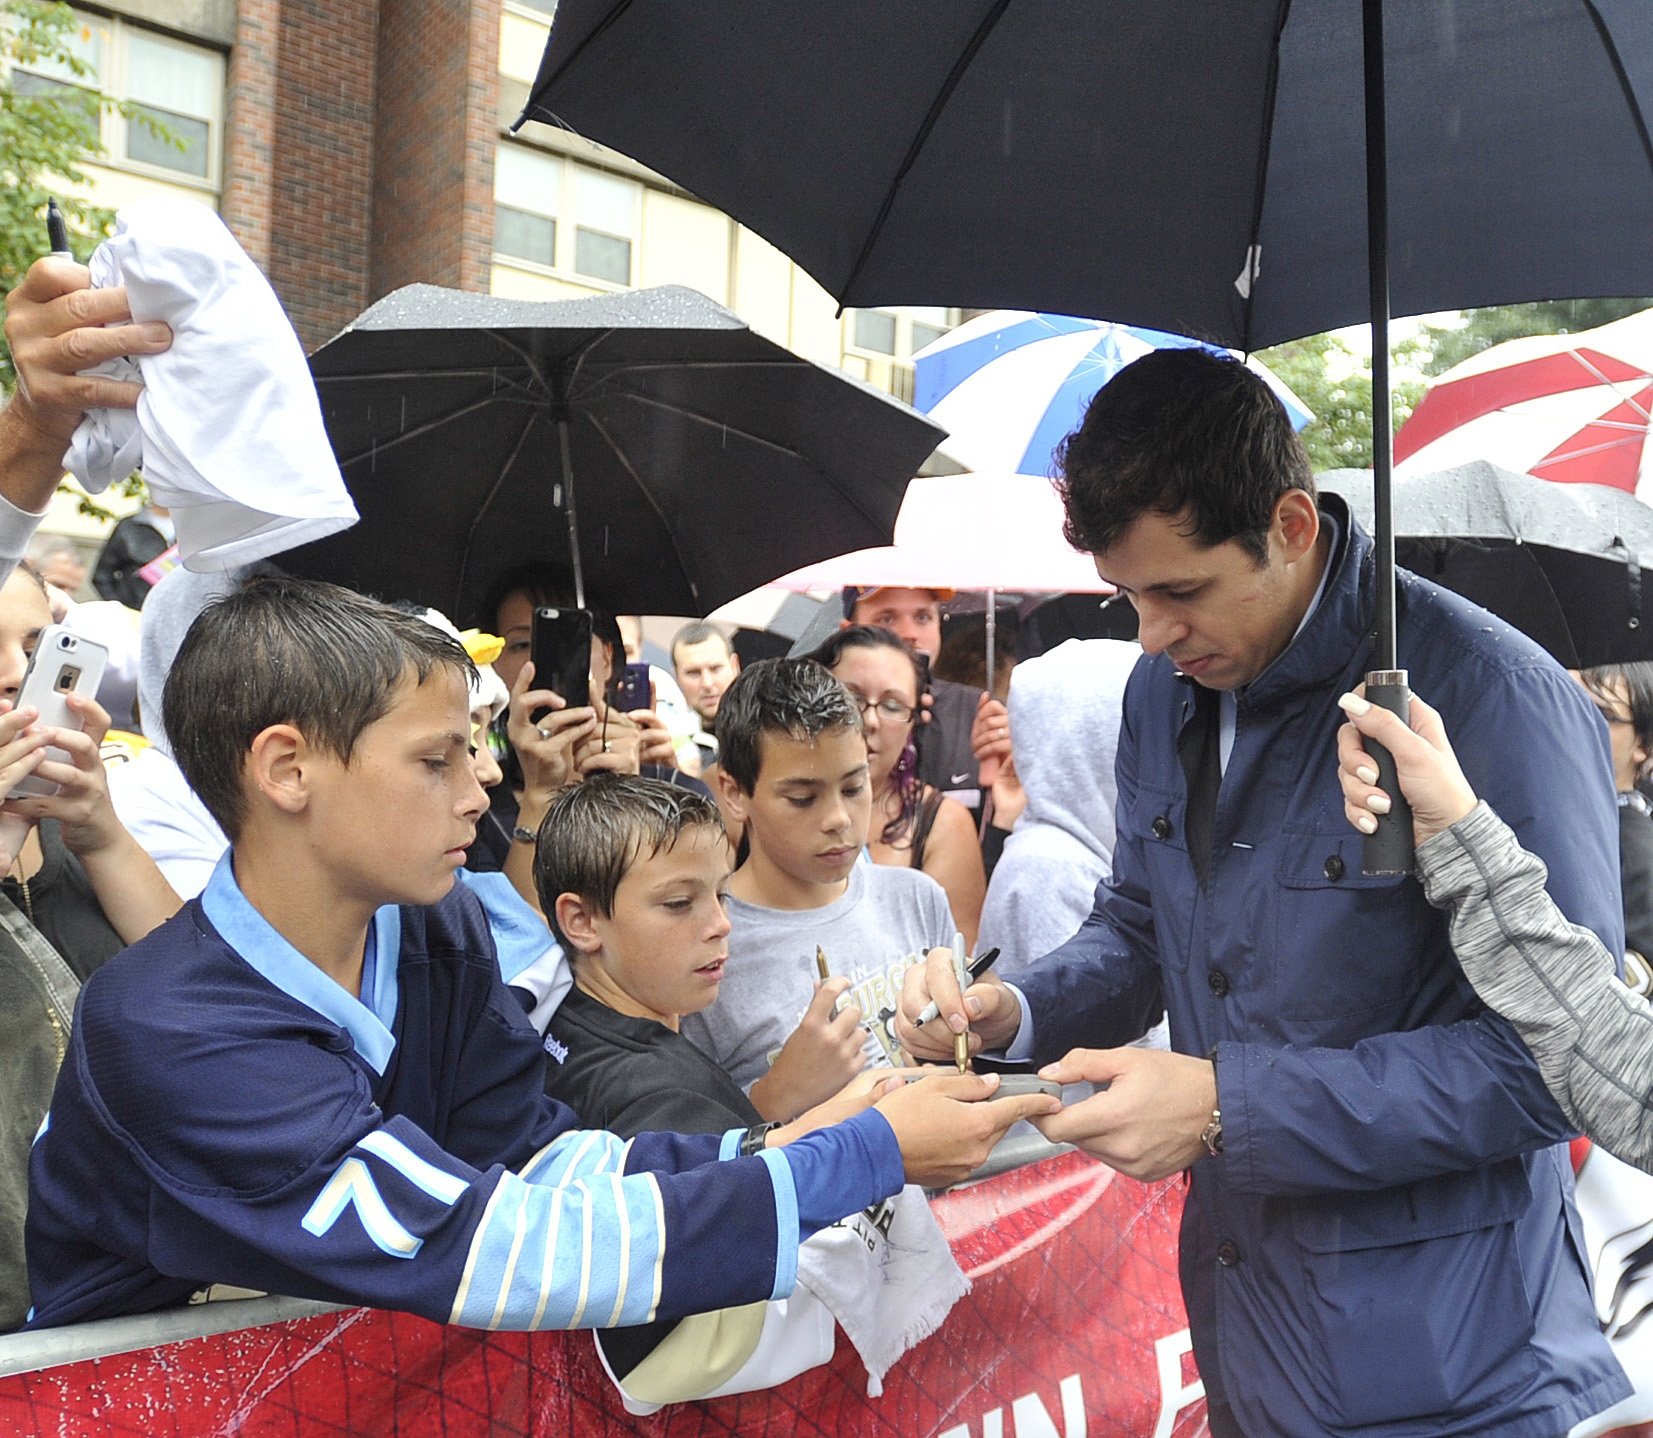 Pittsburgh Penguins Evgeni Malkin signs autographs before the morning skate at Johnstown, Pa., on Tuesday, Sept. 29, 2015.   The Penguins will face the Tampa Bay Lighting in a pre-season NHL hockey game. (Todd Berkey/The Tribune-Democrat via AP) MANDATORY